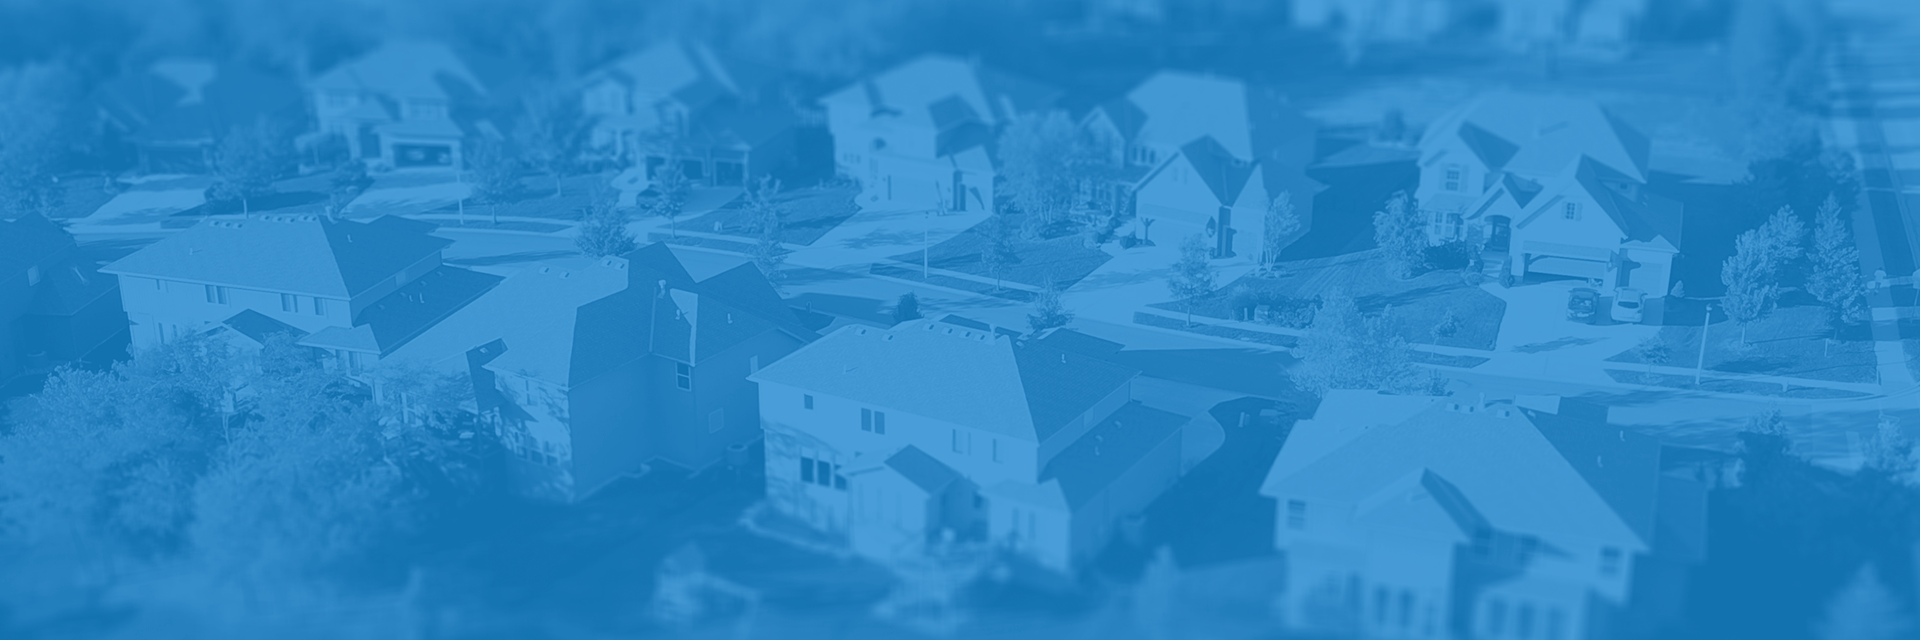 Innovative Business Automation Platform for Real Estate and Property Management.